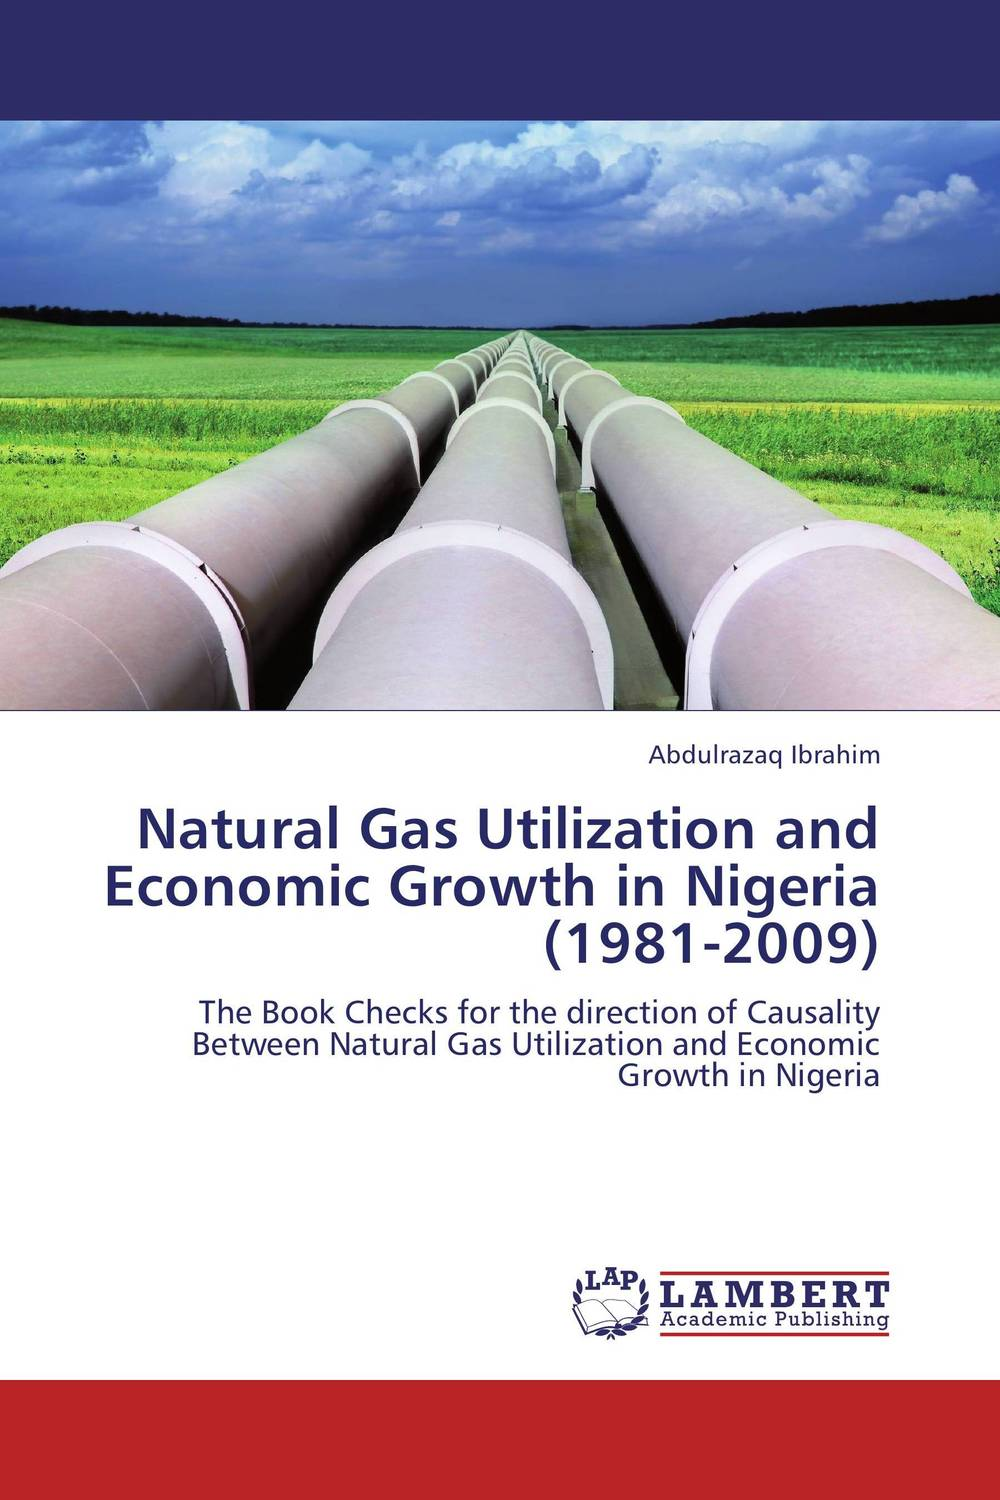 цена на Natural Gas Utilization and Economic Growth in Nigeria (1981-2009)